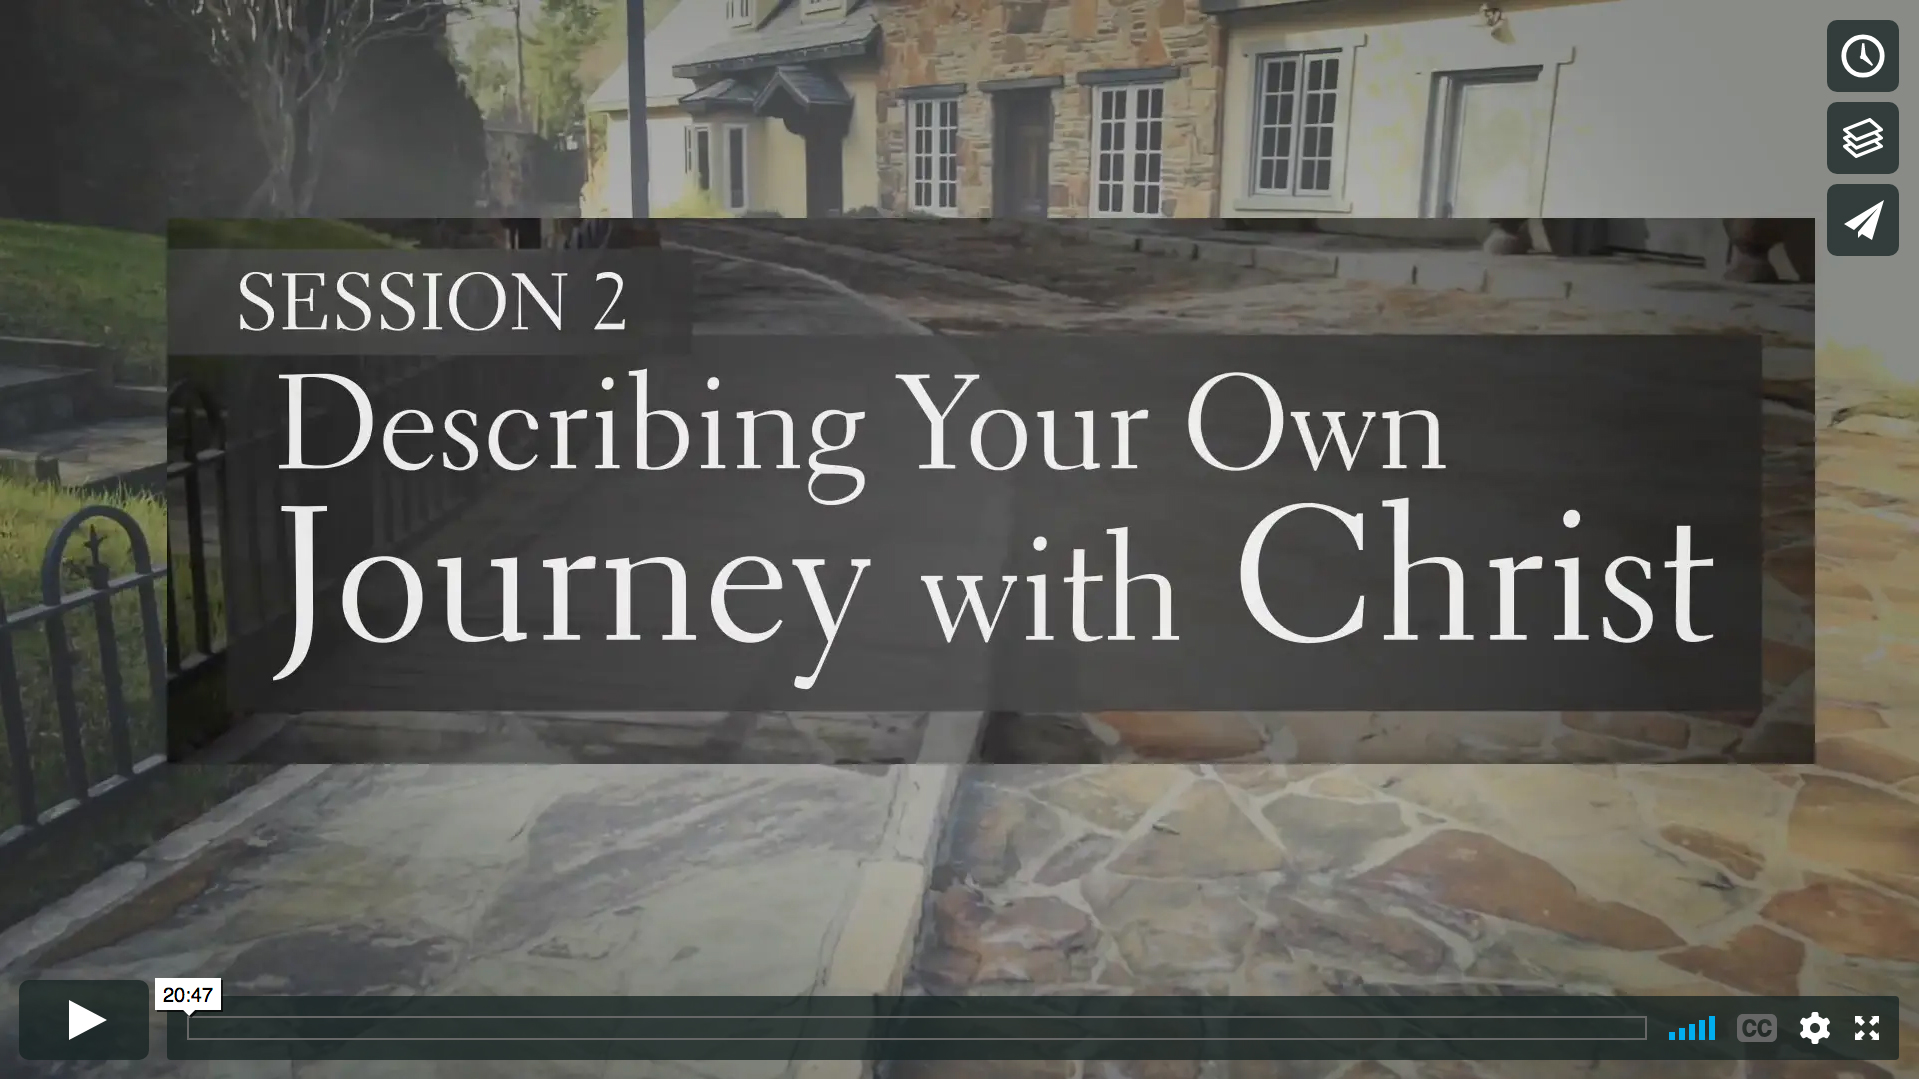 Session 2 - Describing Your Own Journey with Christ